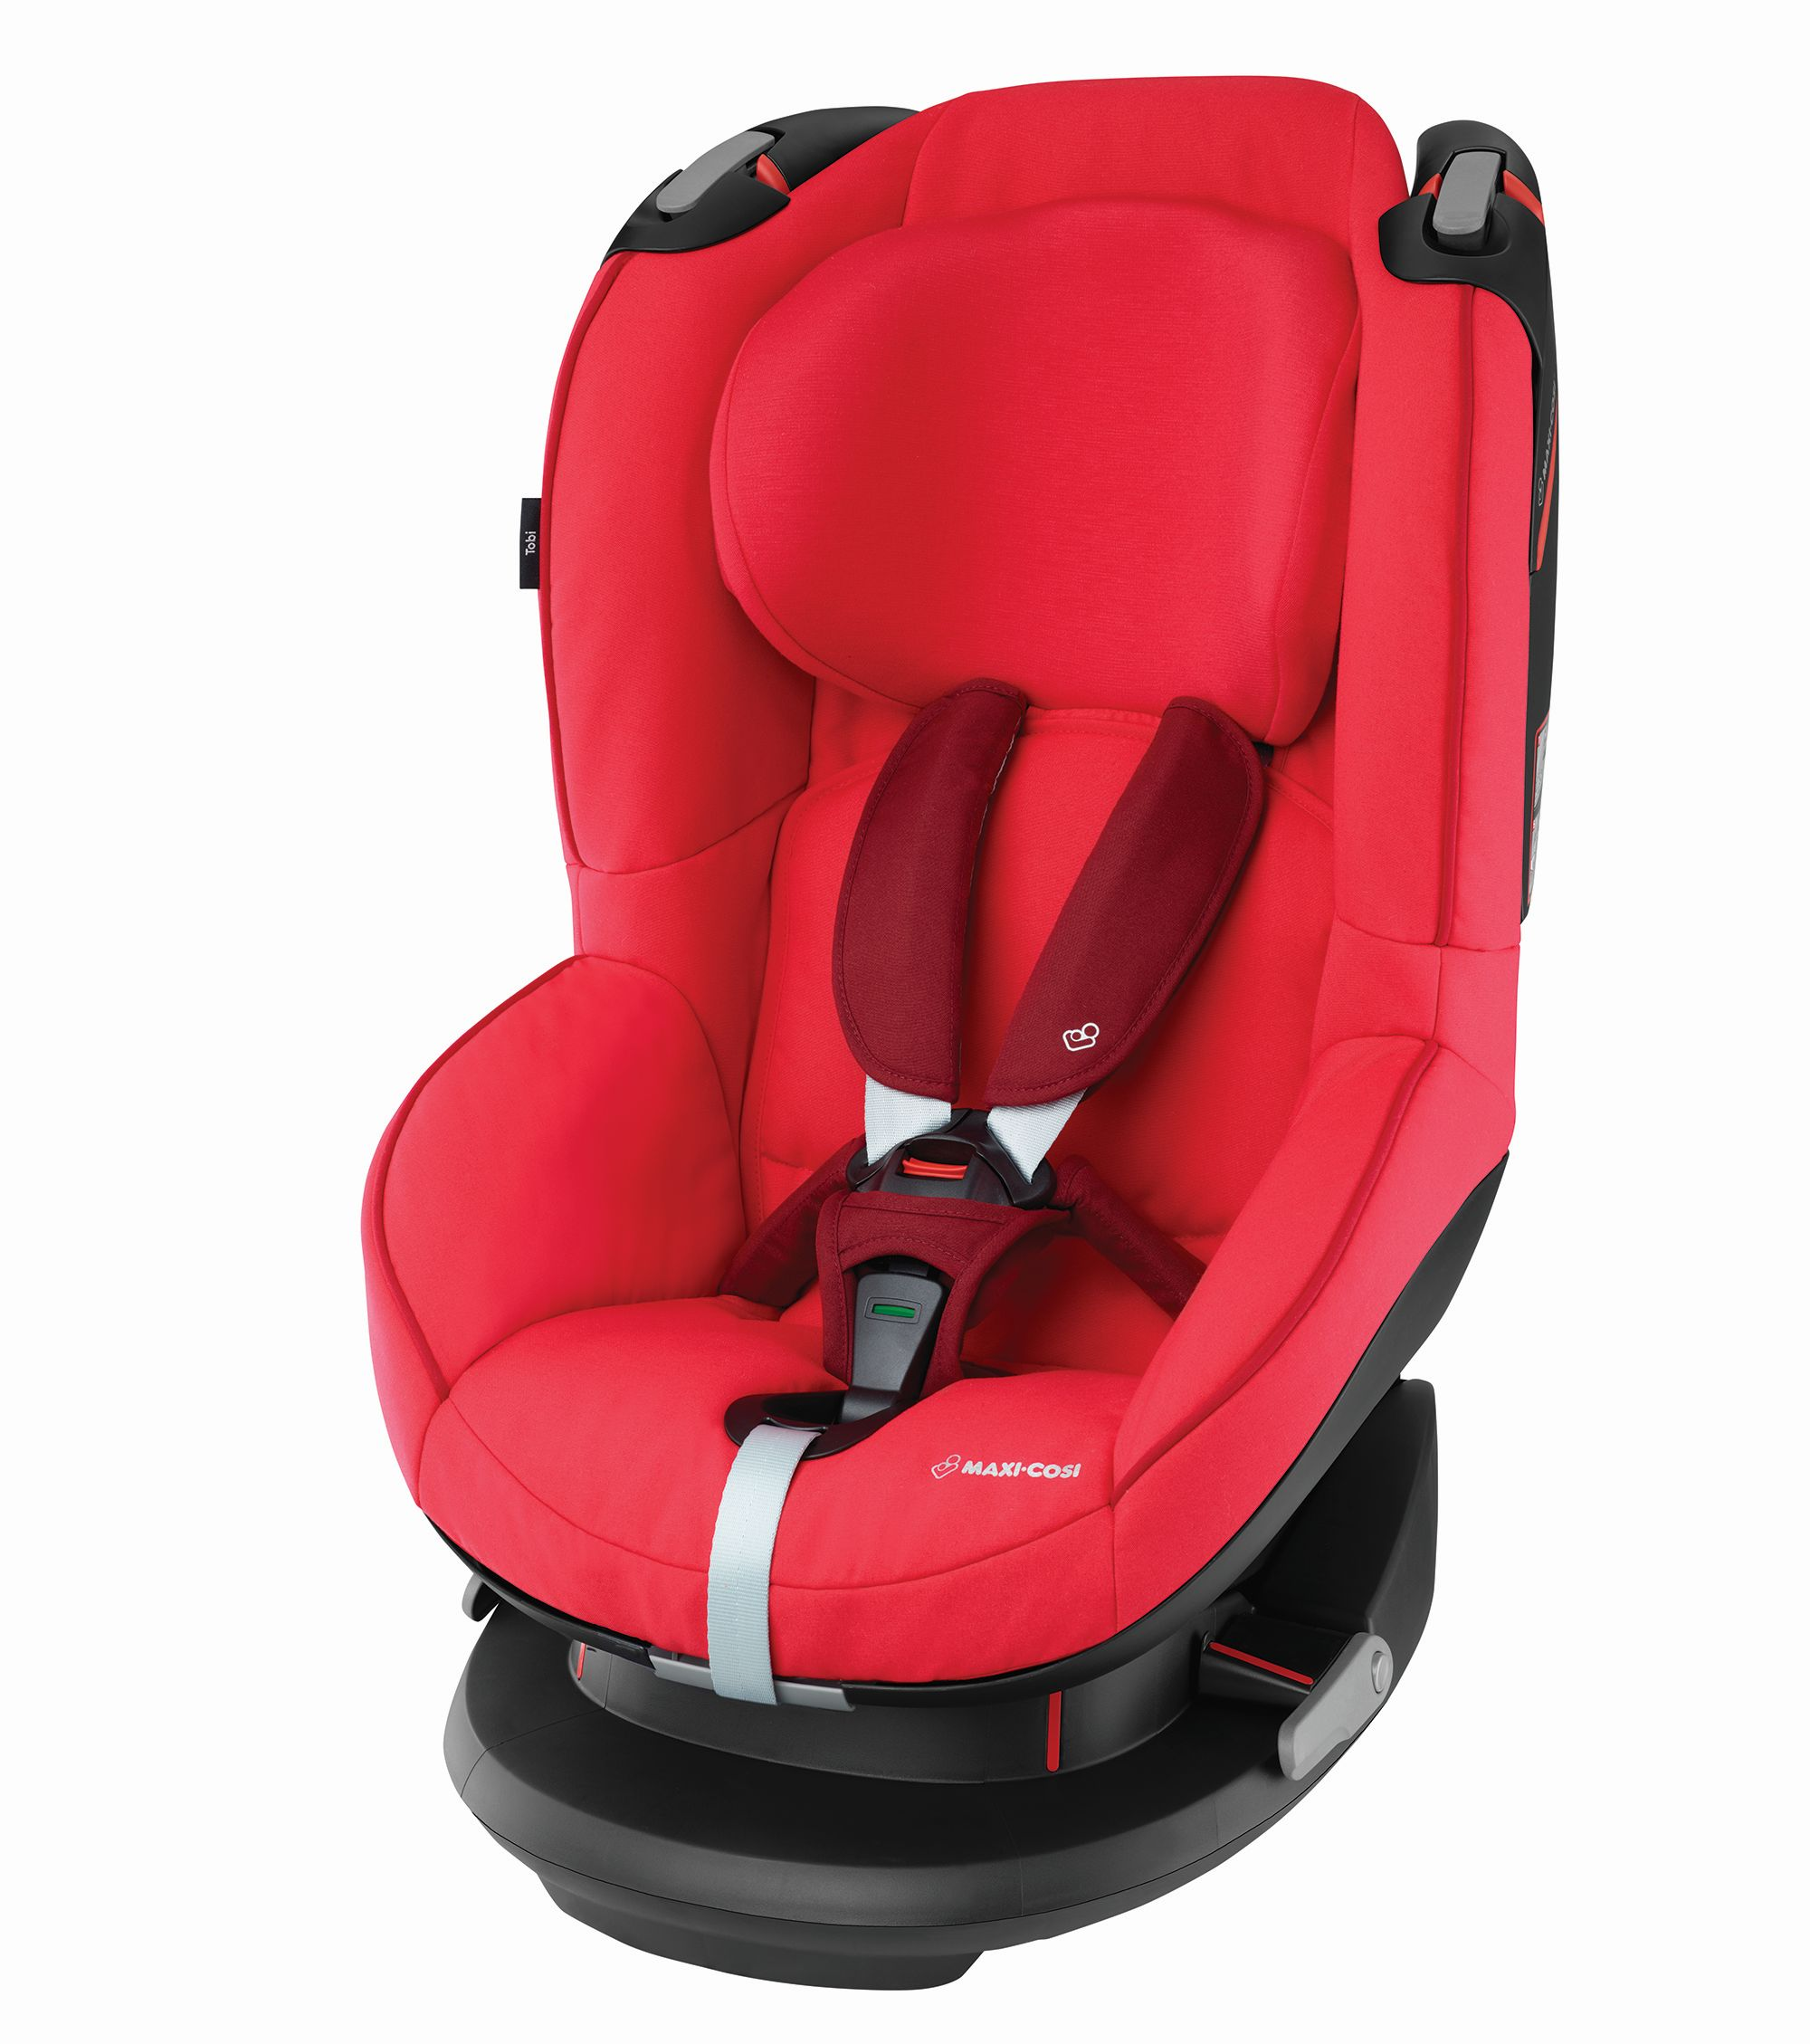 maxi cosi child car seat tobi 2018 vivid red buy at kidsroom car seats. Black Bedroom Furniture Sets. Home Design Ideas